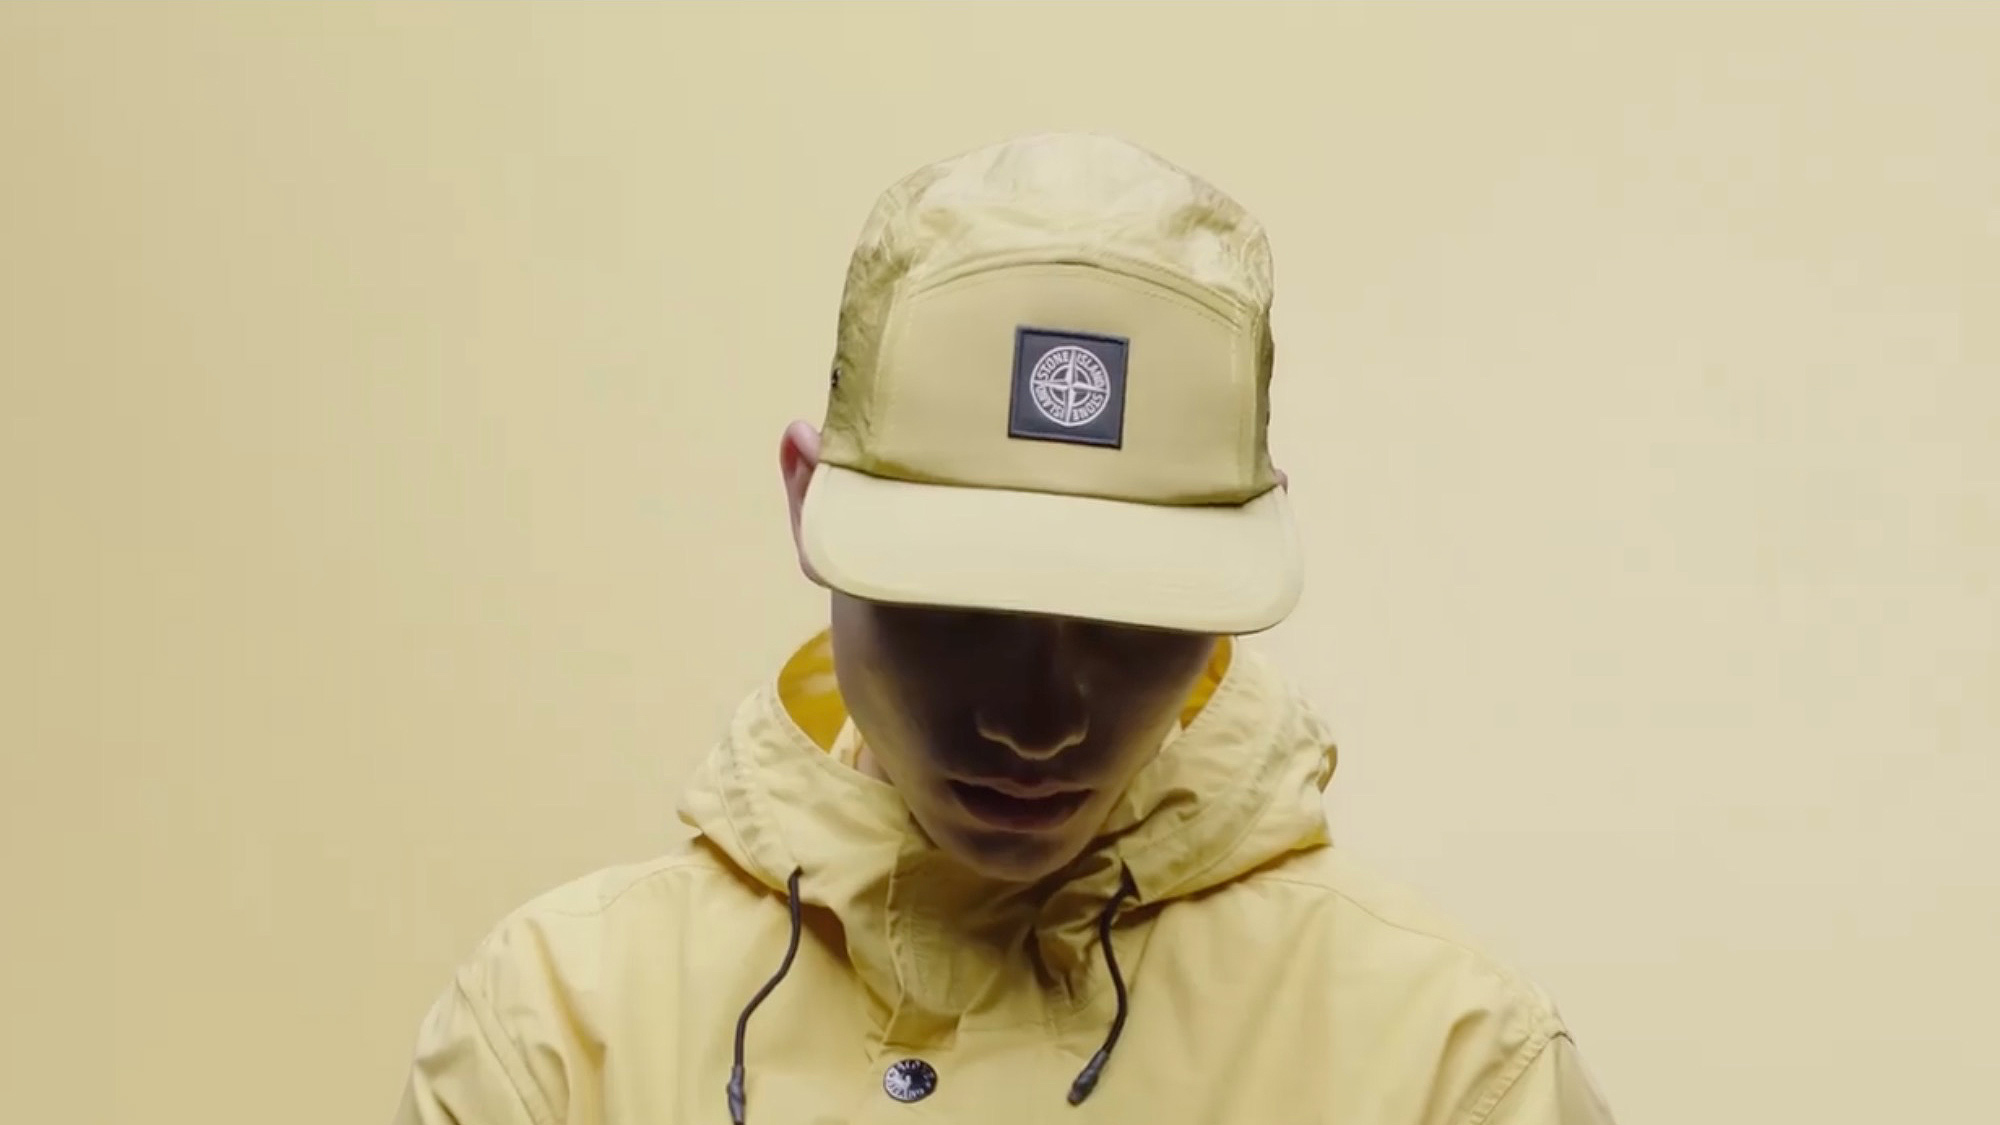 6815 Stone Island SS '018 Collection Video